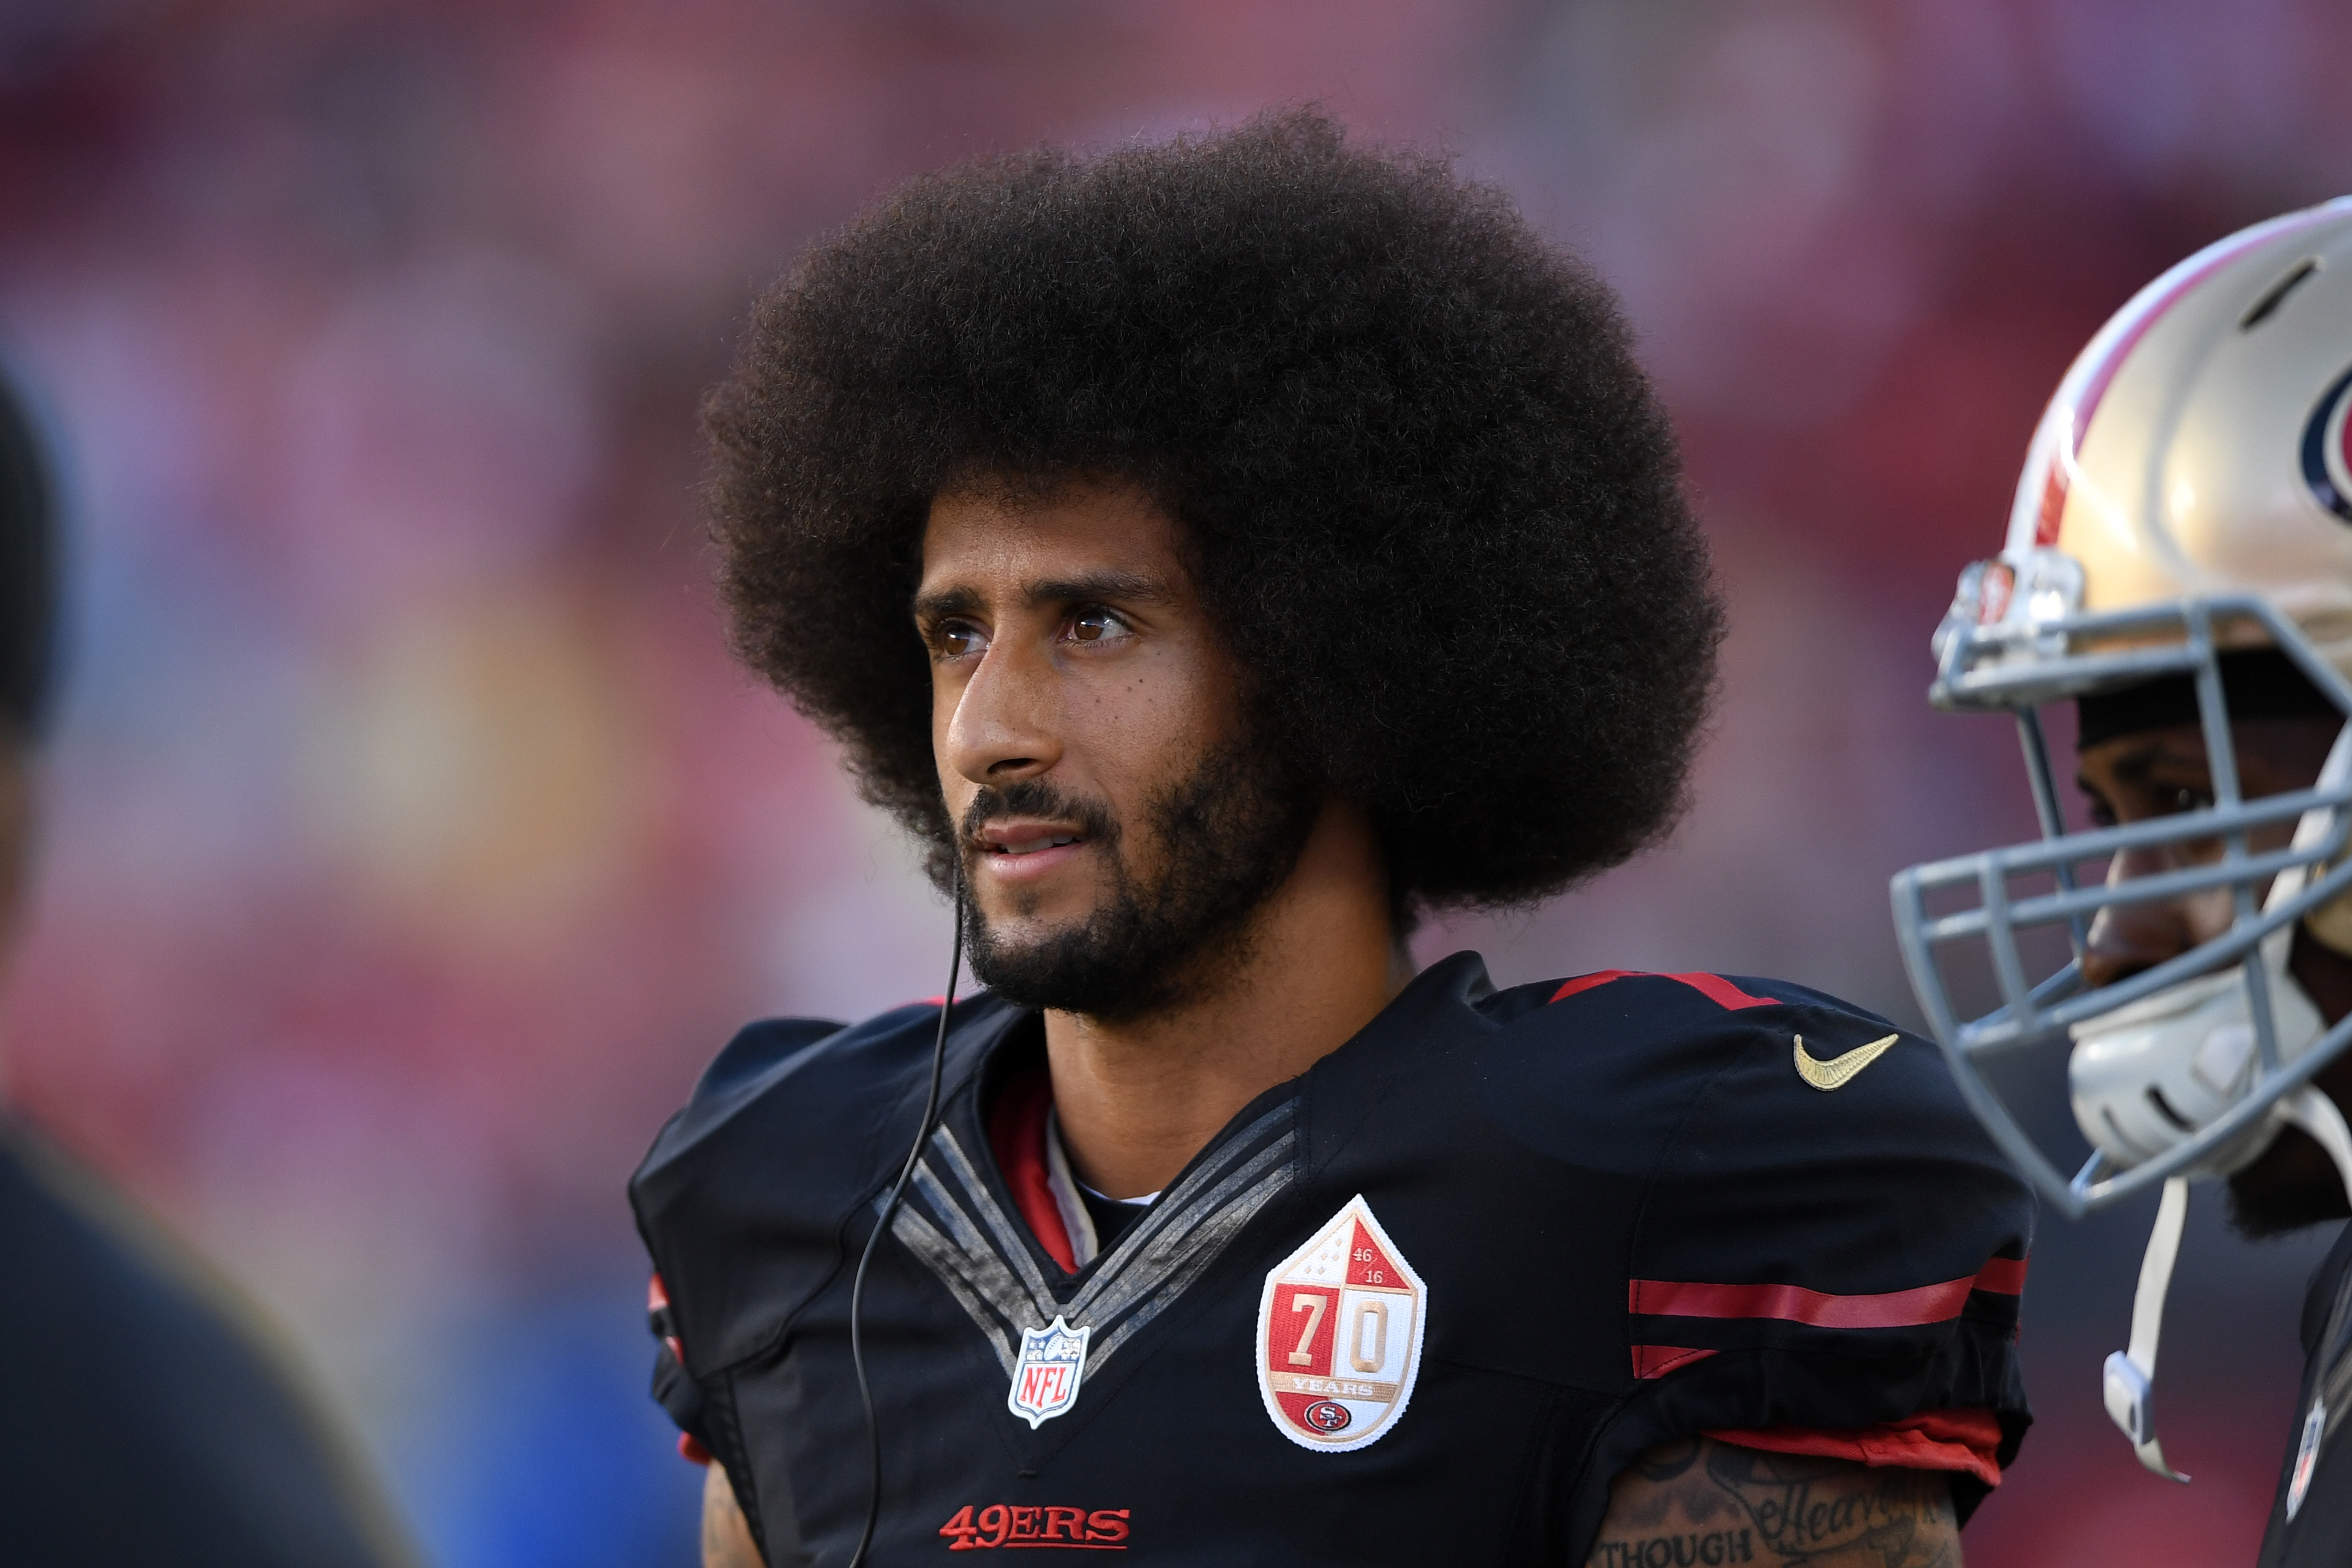 Colin Kaepernick #7 of the San Francisco 49ers stands on the sidelines during their NFL game against the Arizona Cardinals at Levi's Stadium on October 6, 2016 in Santa Clara, California.